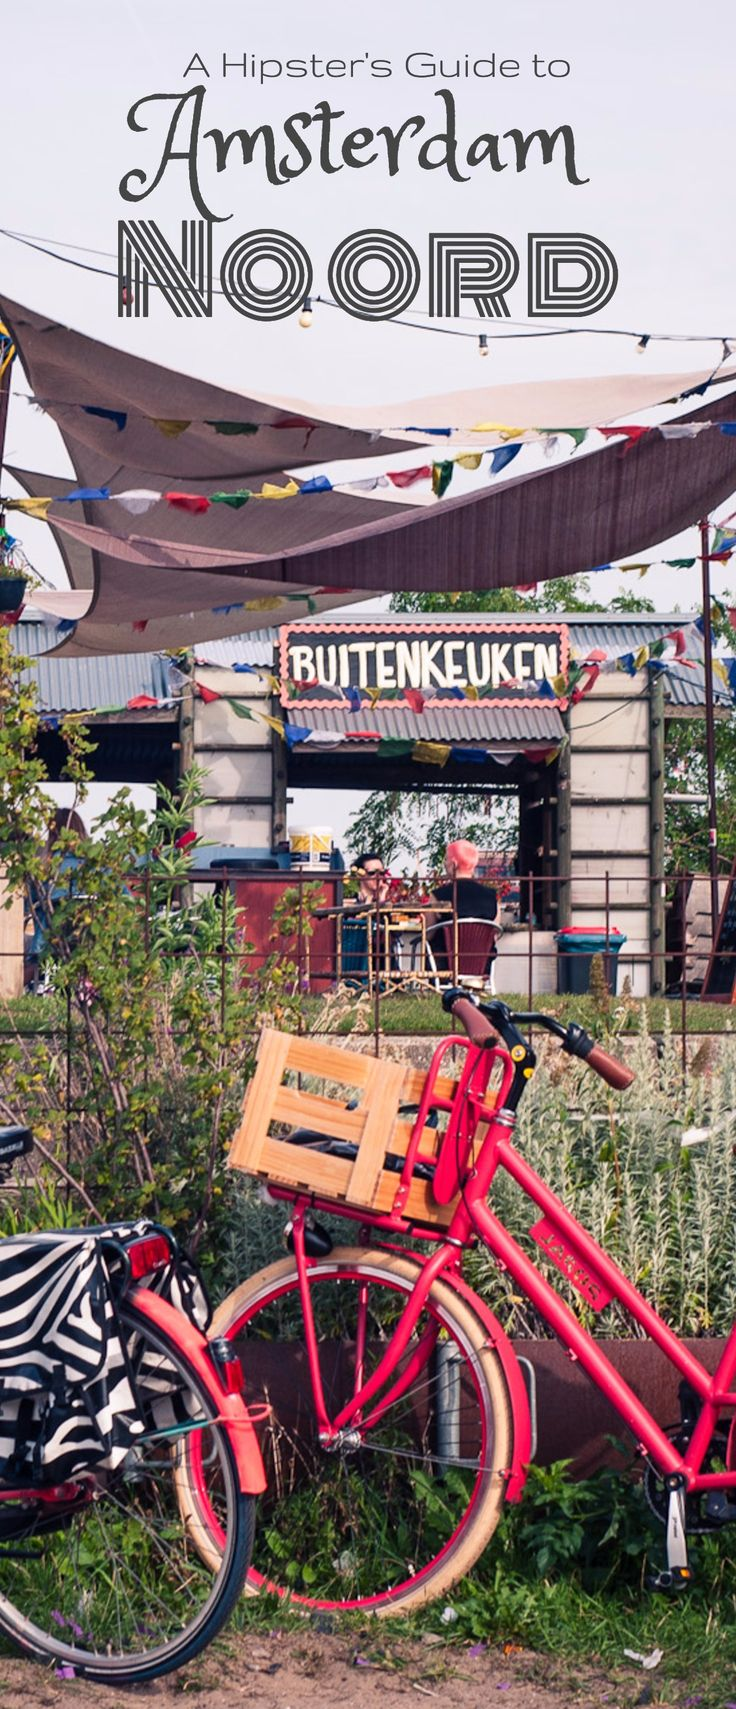 NDSM Werf in Noord - the coolest neighborhood of Amsterdam. Here's a hipster's guide to Amsterdam-Noord with information about how to reach, where to stay, things to do, NDSM Werf and more! #amsterdam #amsterdamnoord #netherlands  #holland  Cover photo by Mr. Amsterdam [CC BY-SA 2.0] via Flickr